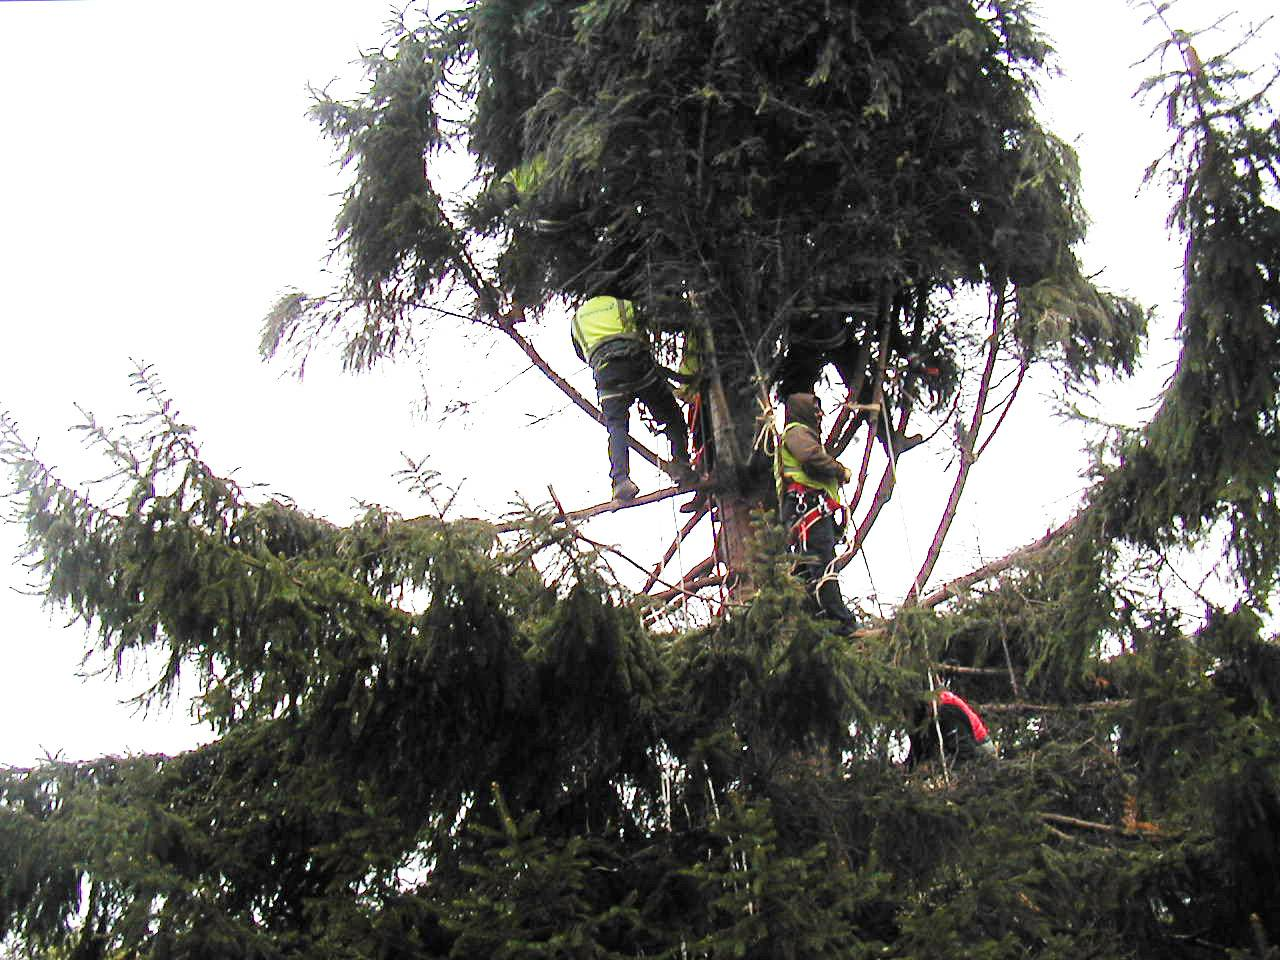 Crews work on Ed Dorfler's 62-foot Norway spruce in Grayslake. The tree was chosen as Chicago's official Christmas tree this year.